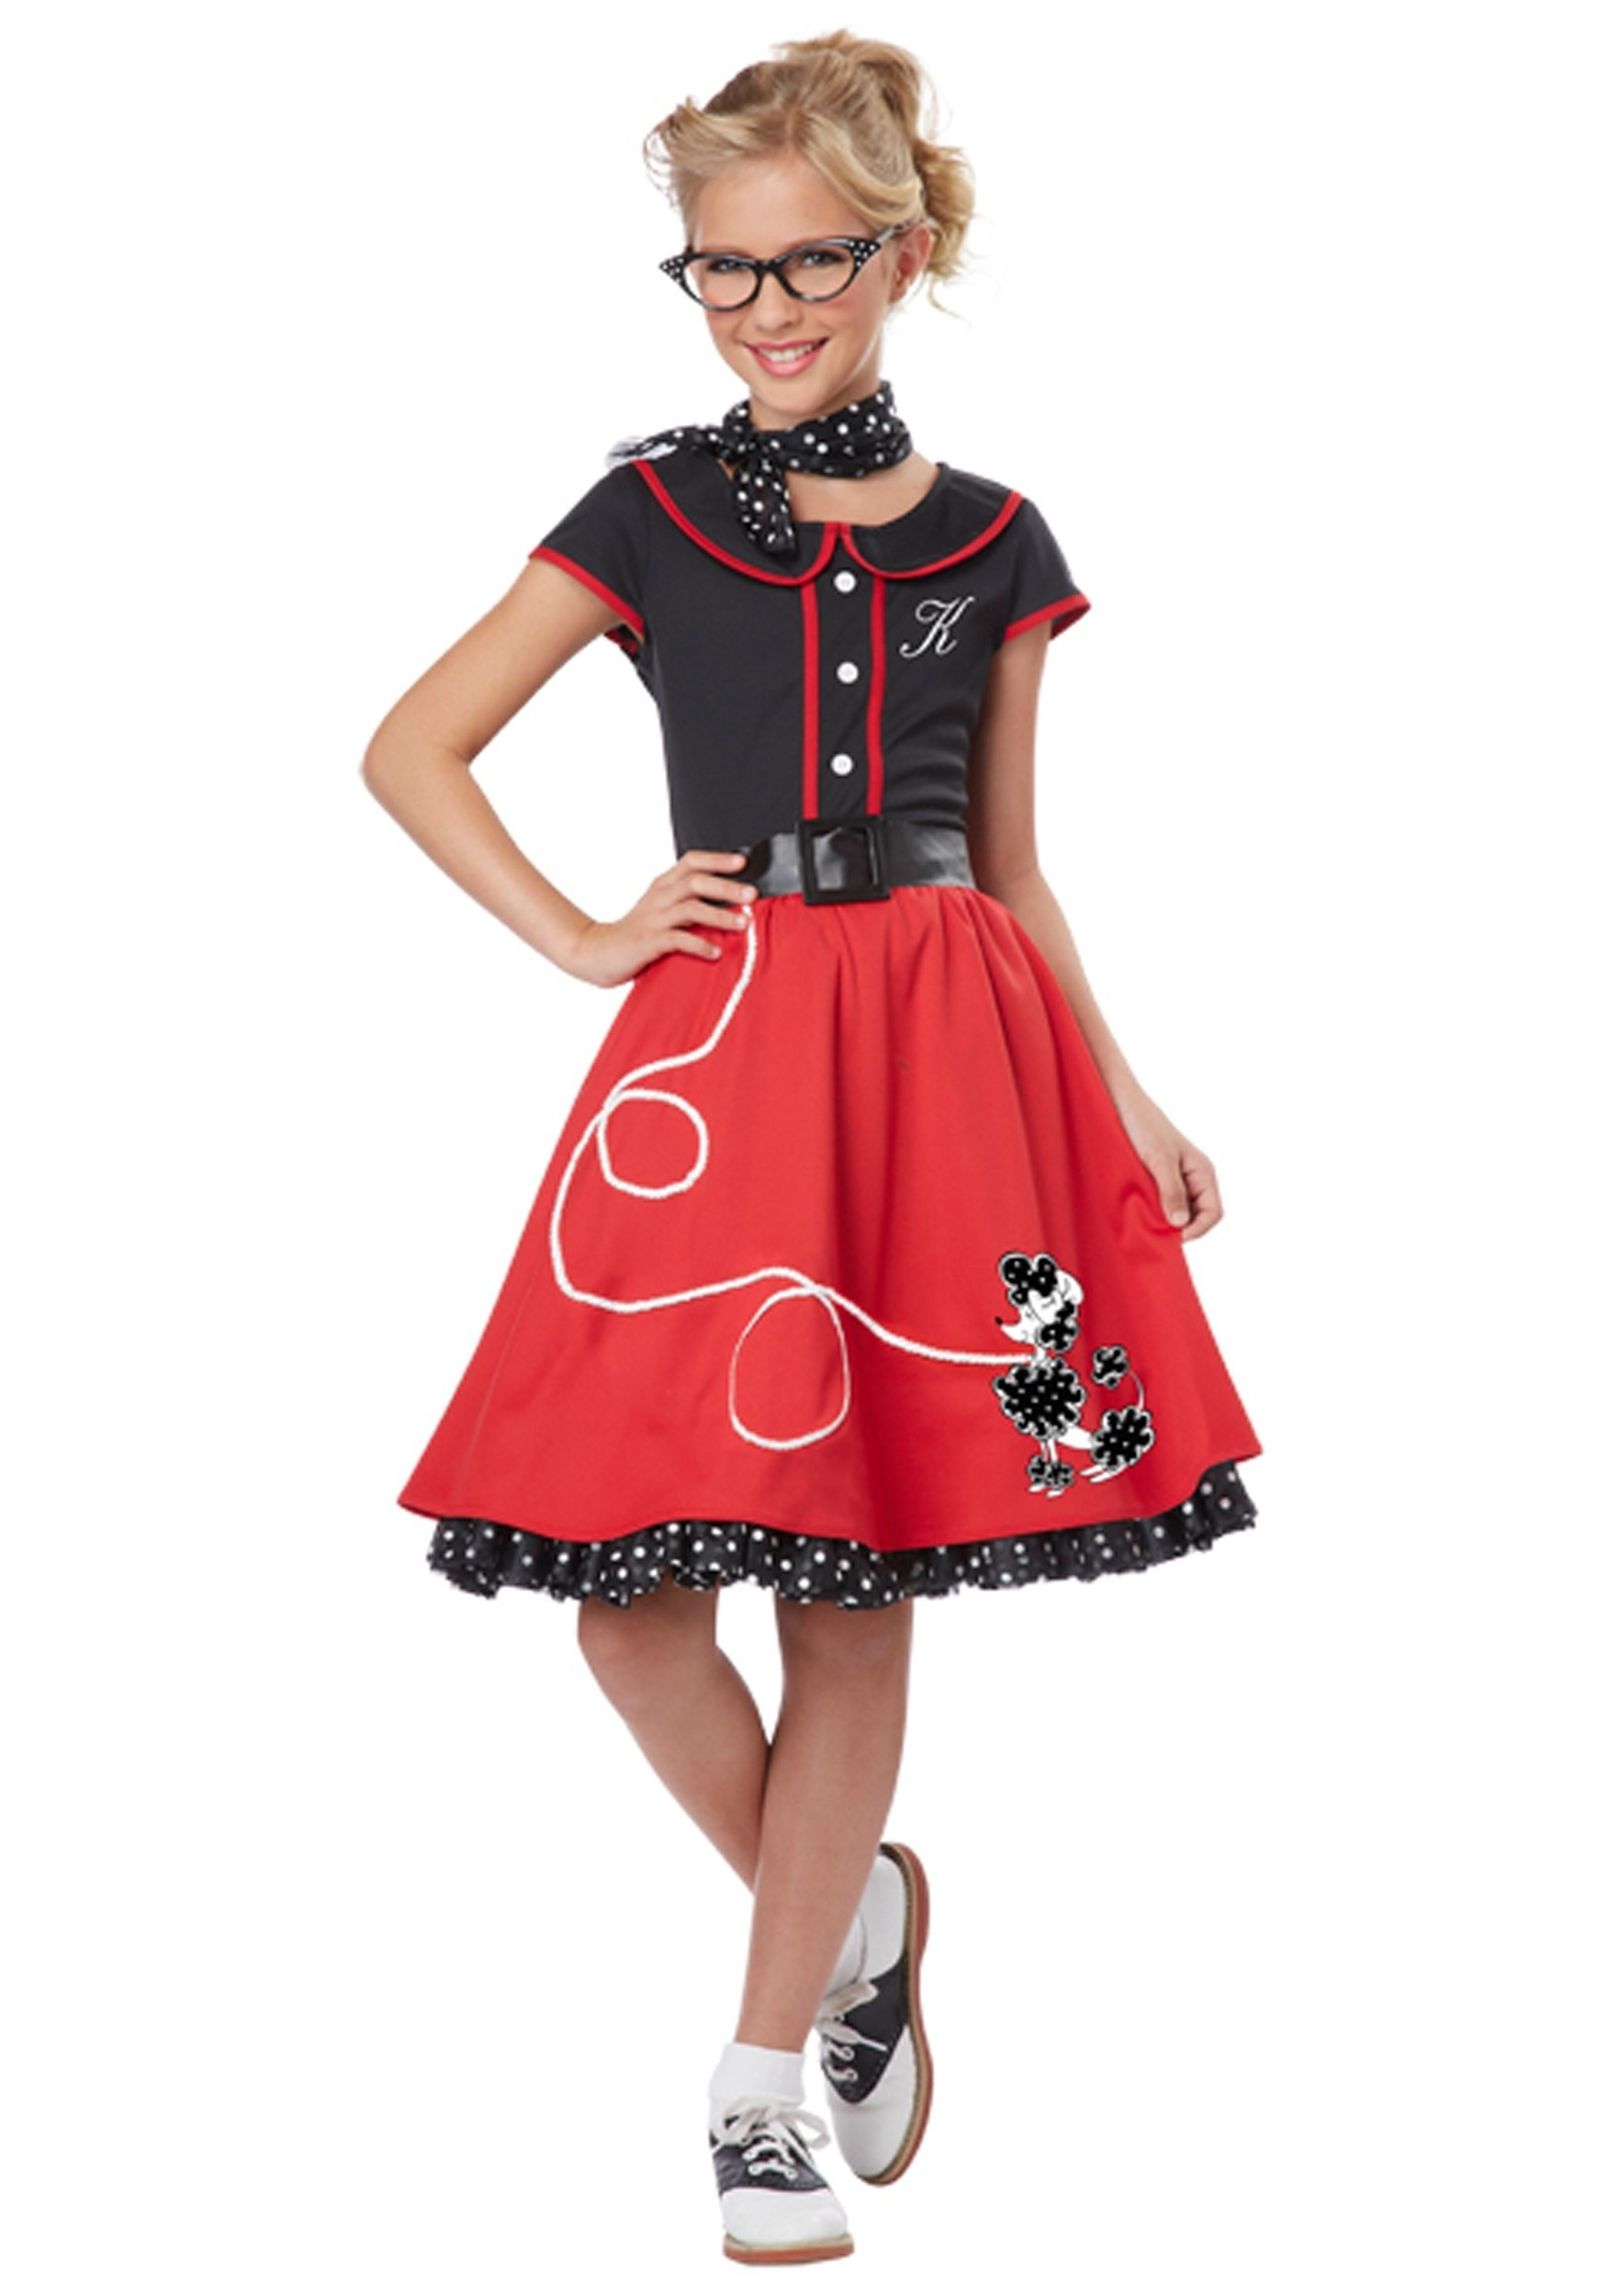 9bd4e6b22263 50s Costumes & Sock Hop Outfits for Adults and Kids